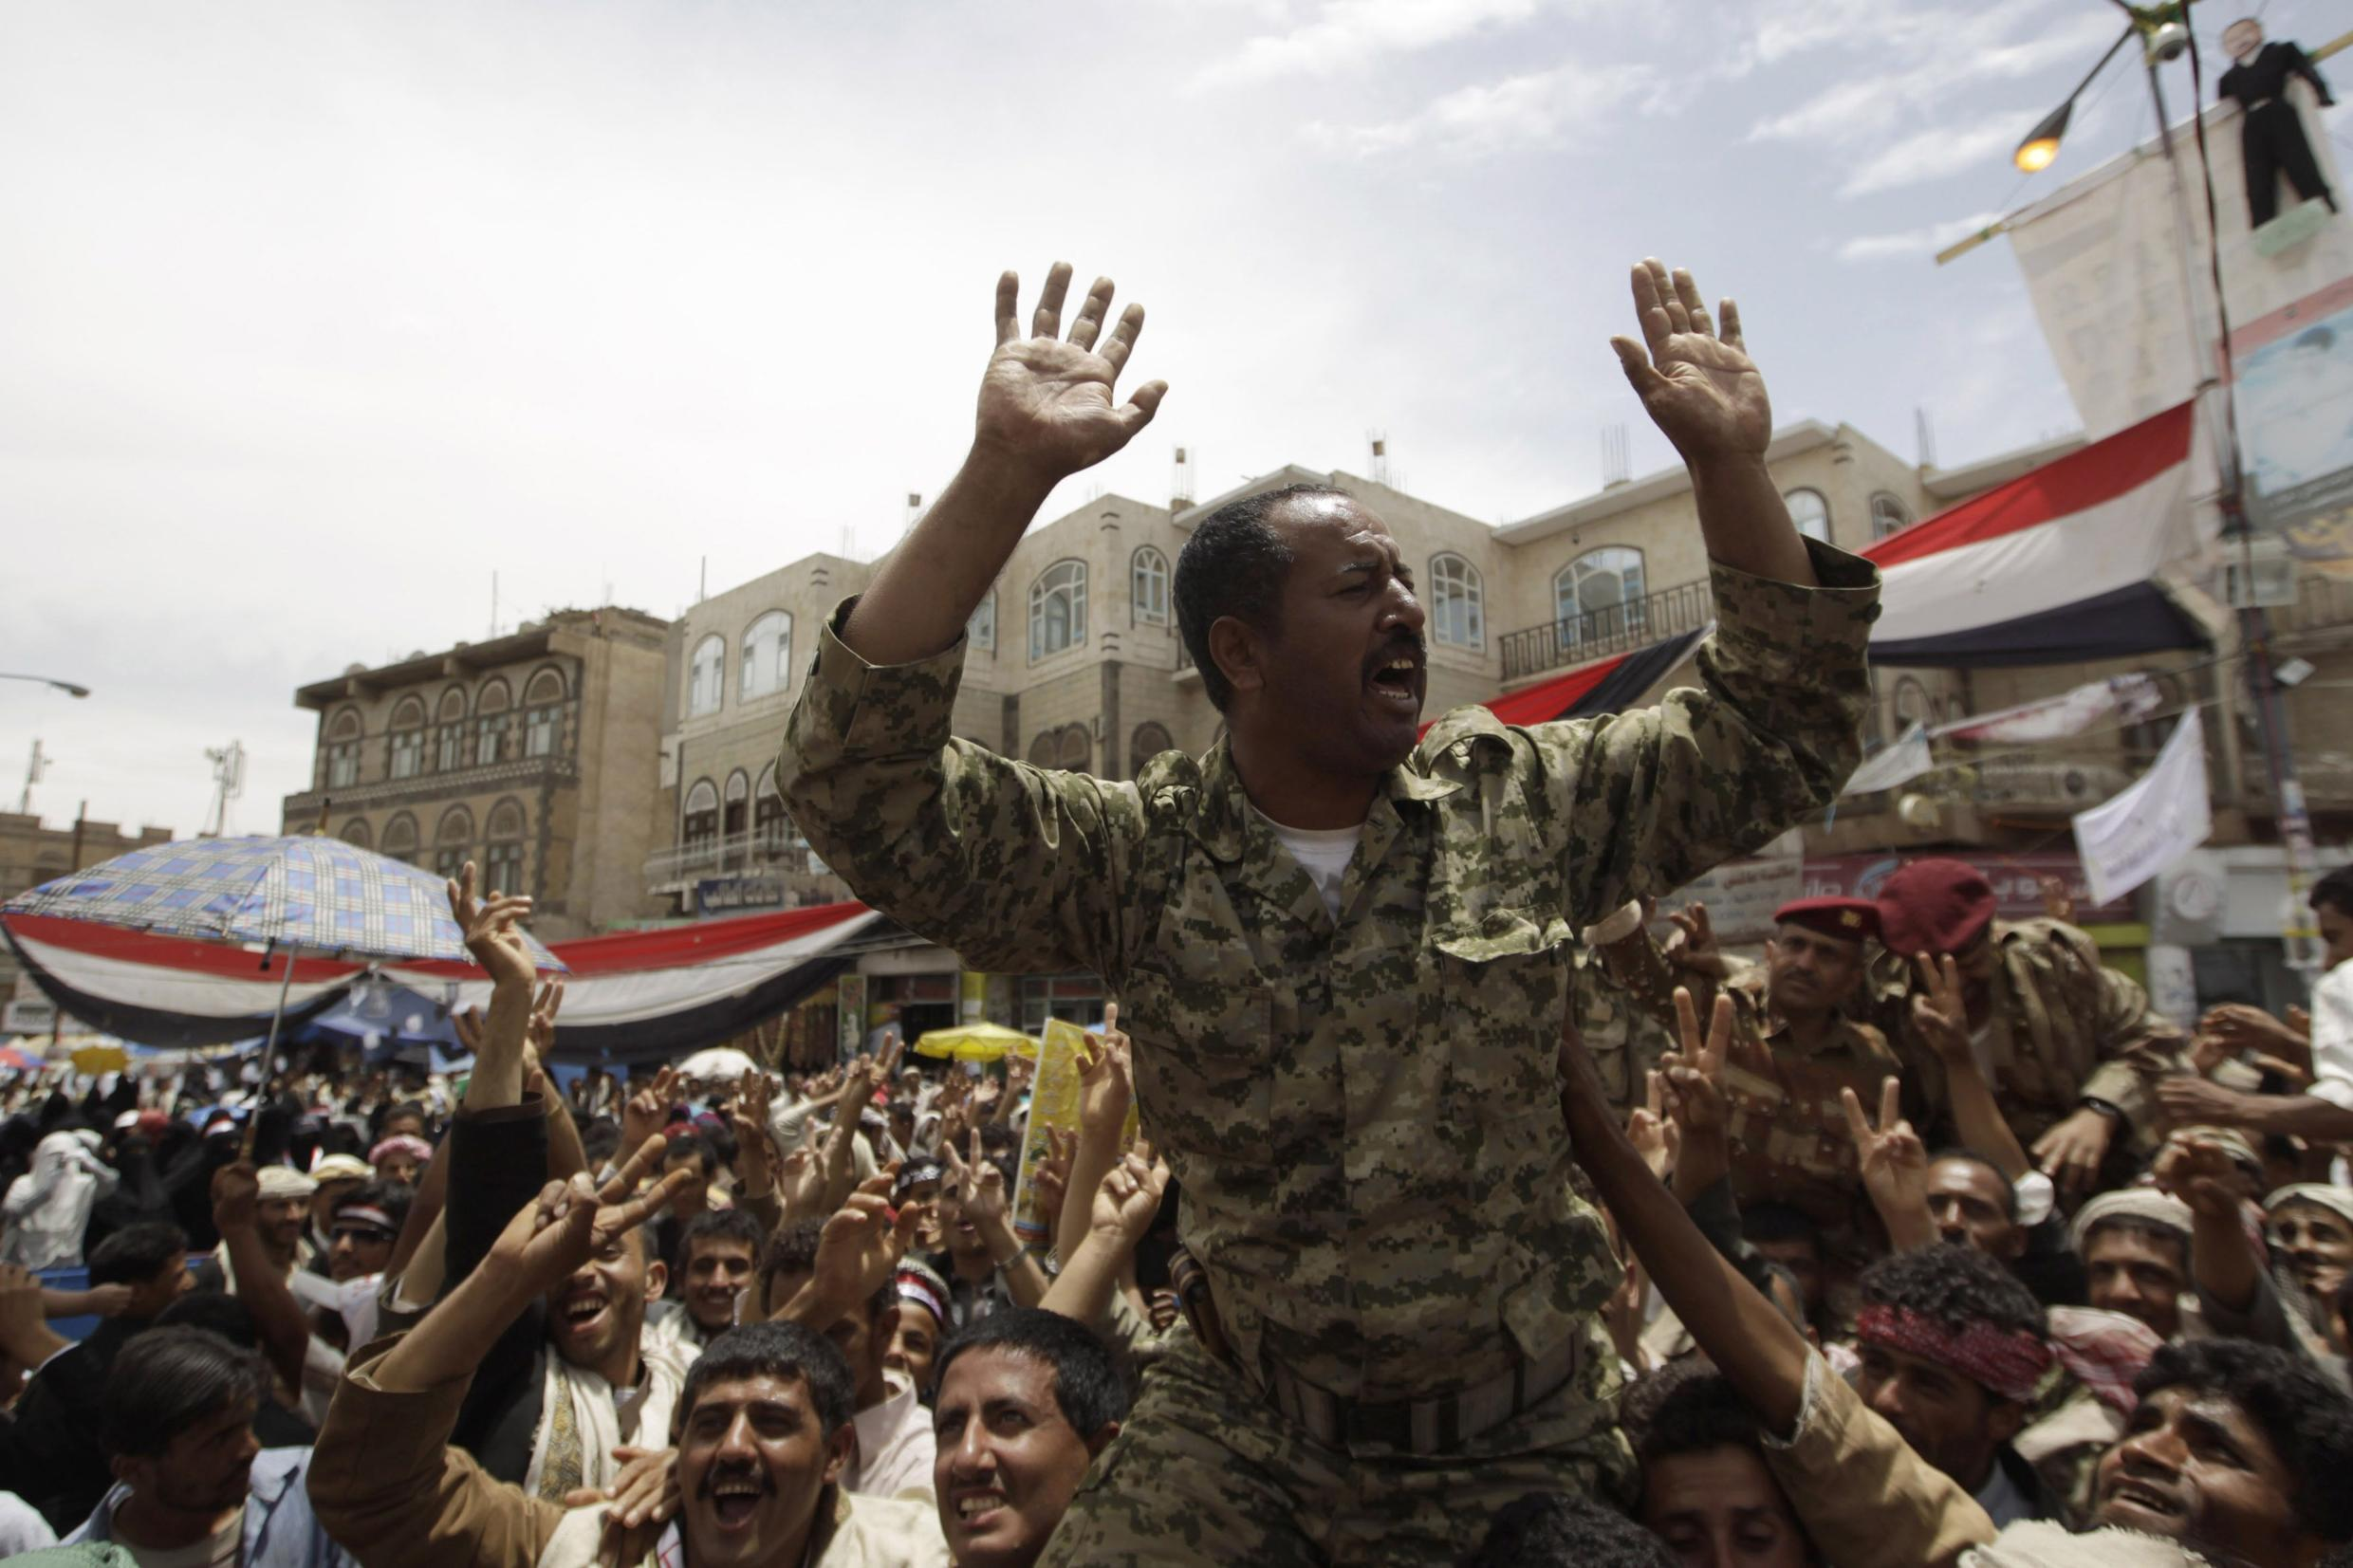 An army officer joins the protest in Sanaa on Saturday